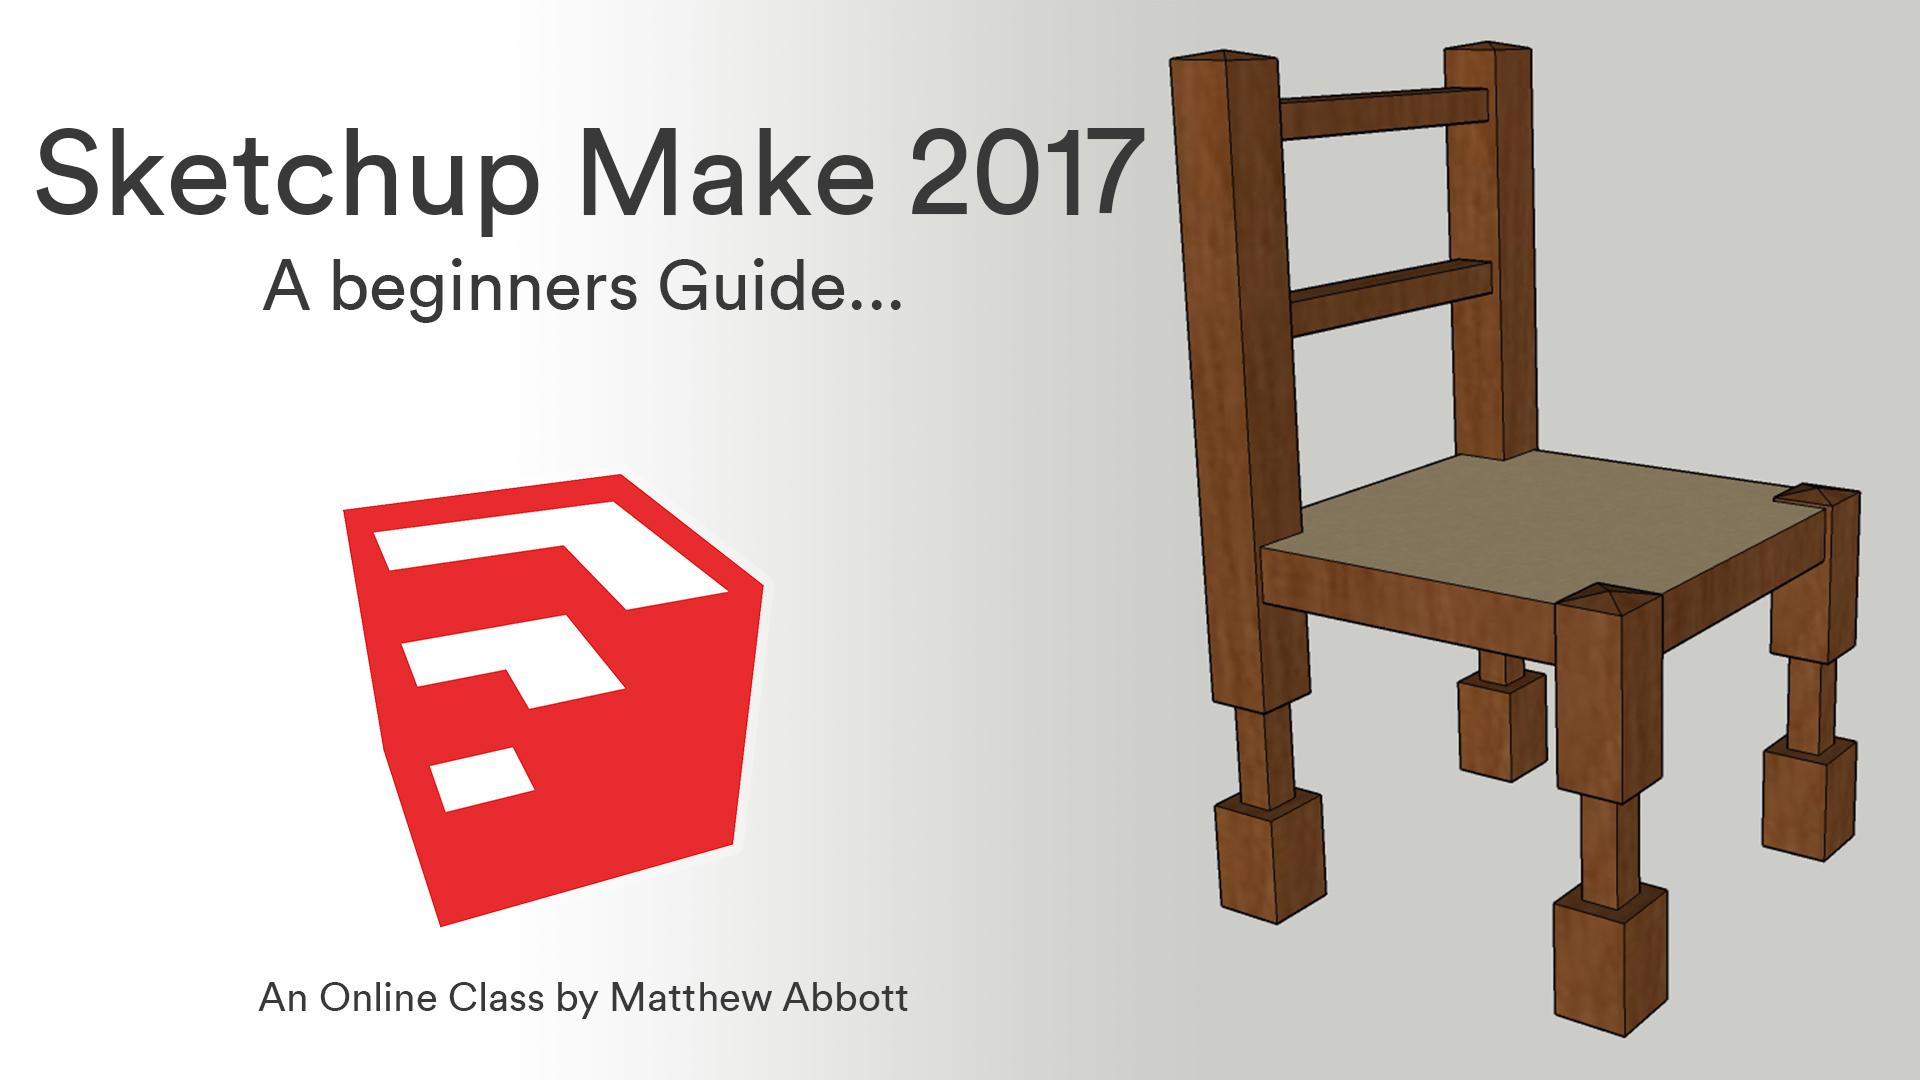 sketchup make free download 2017